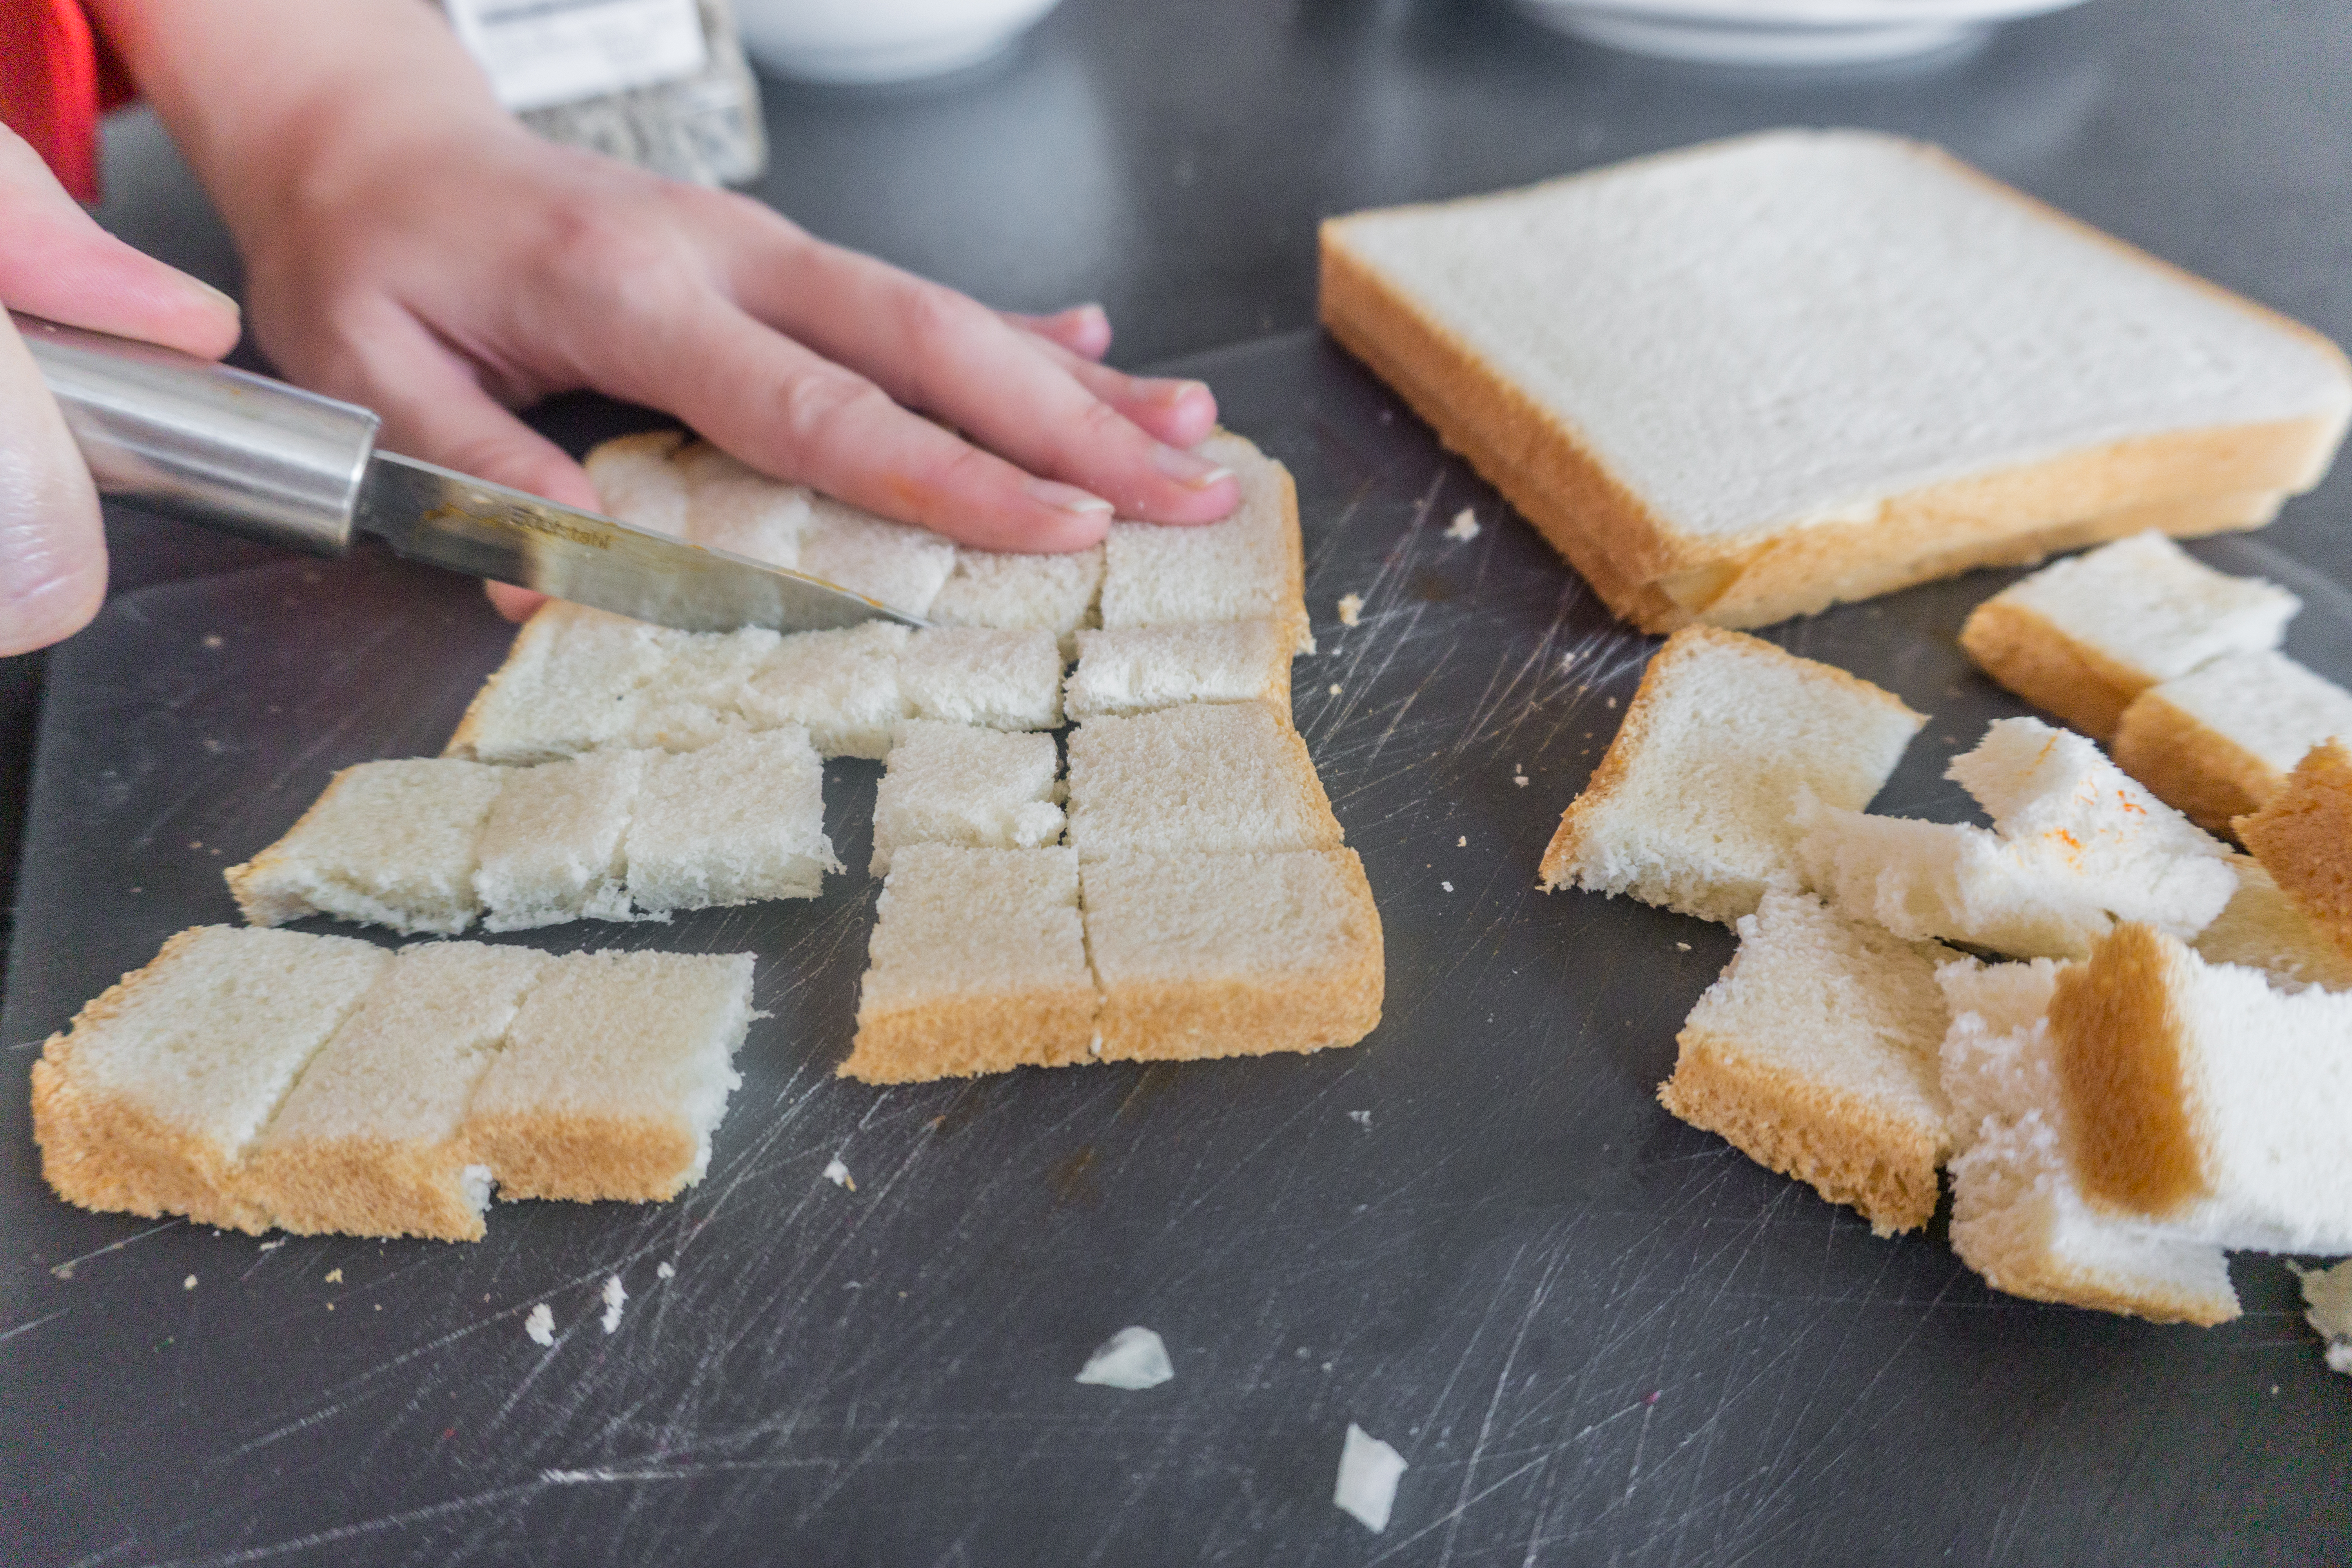 The bread is being cut into smaller pieces for the salad.